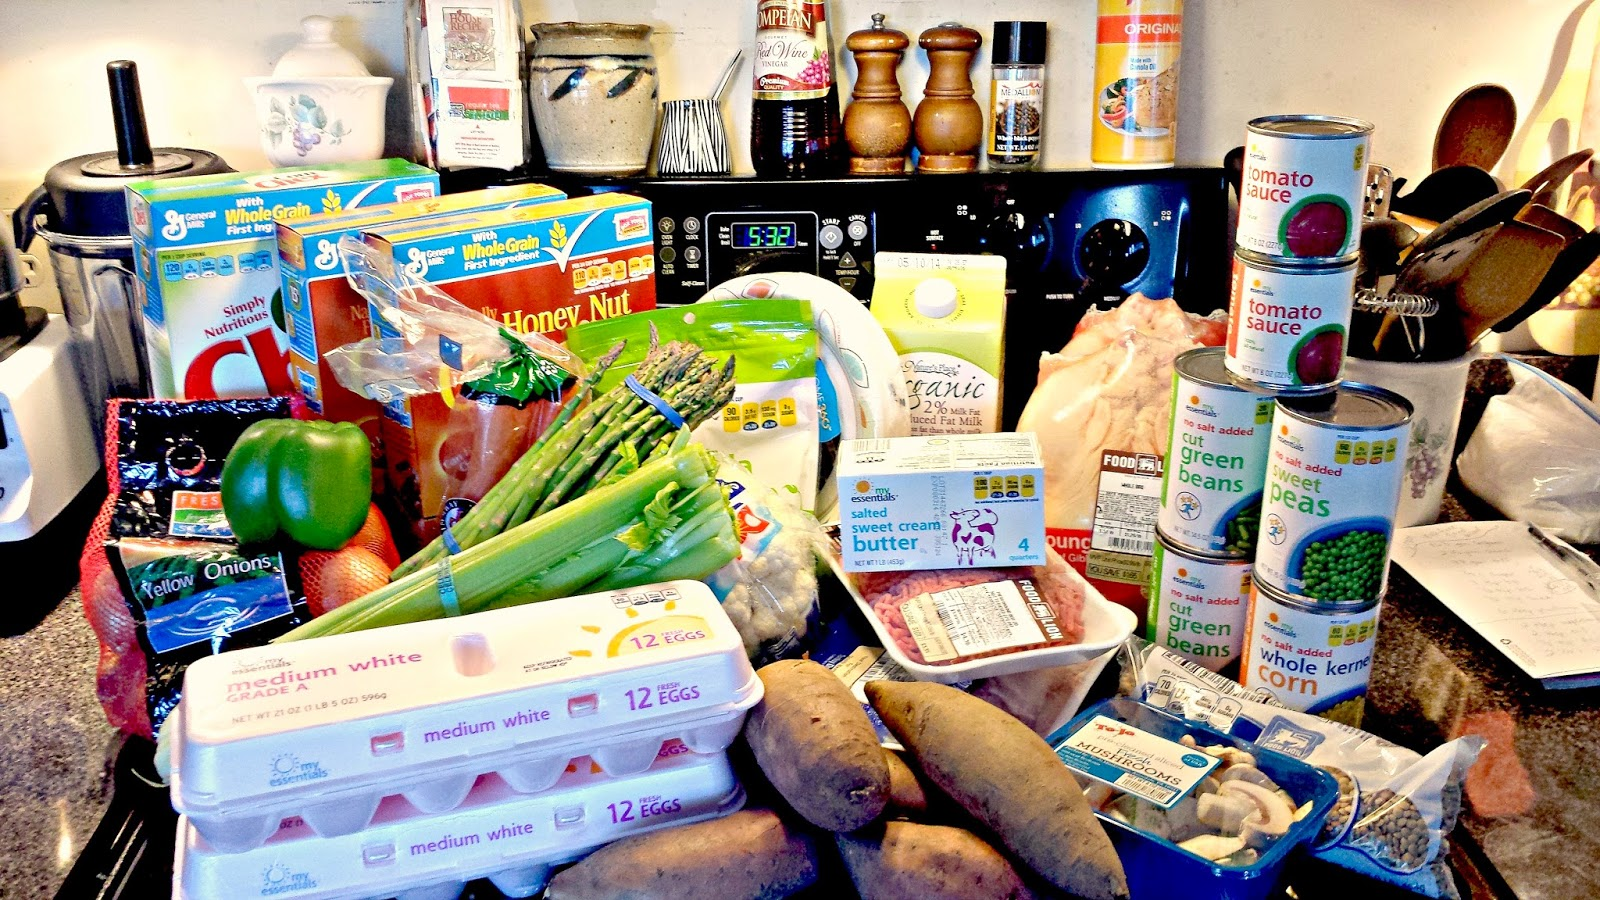 Where To Buy Organic Food In Greenville Nc